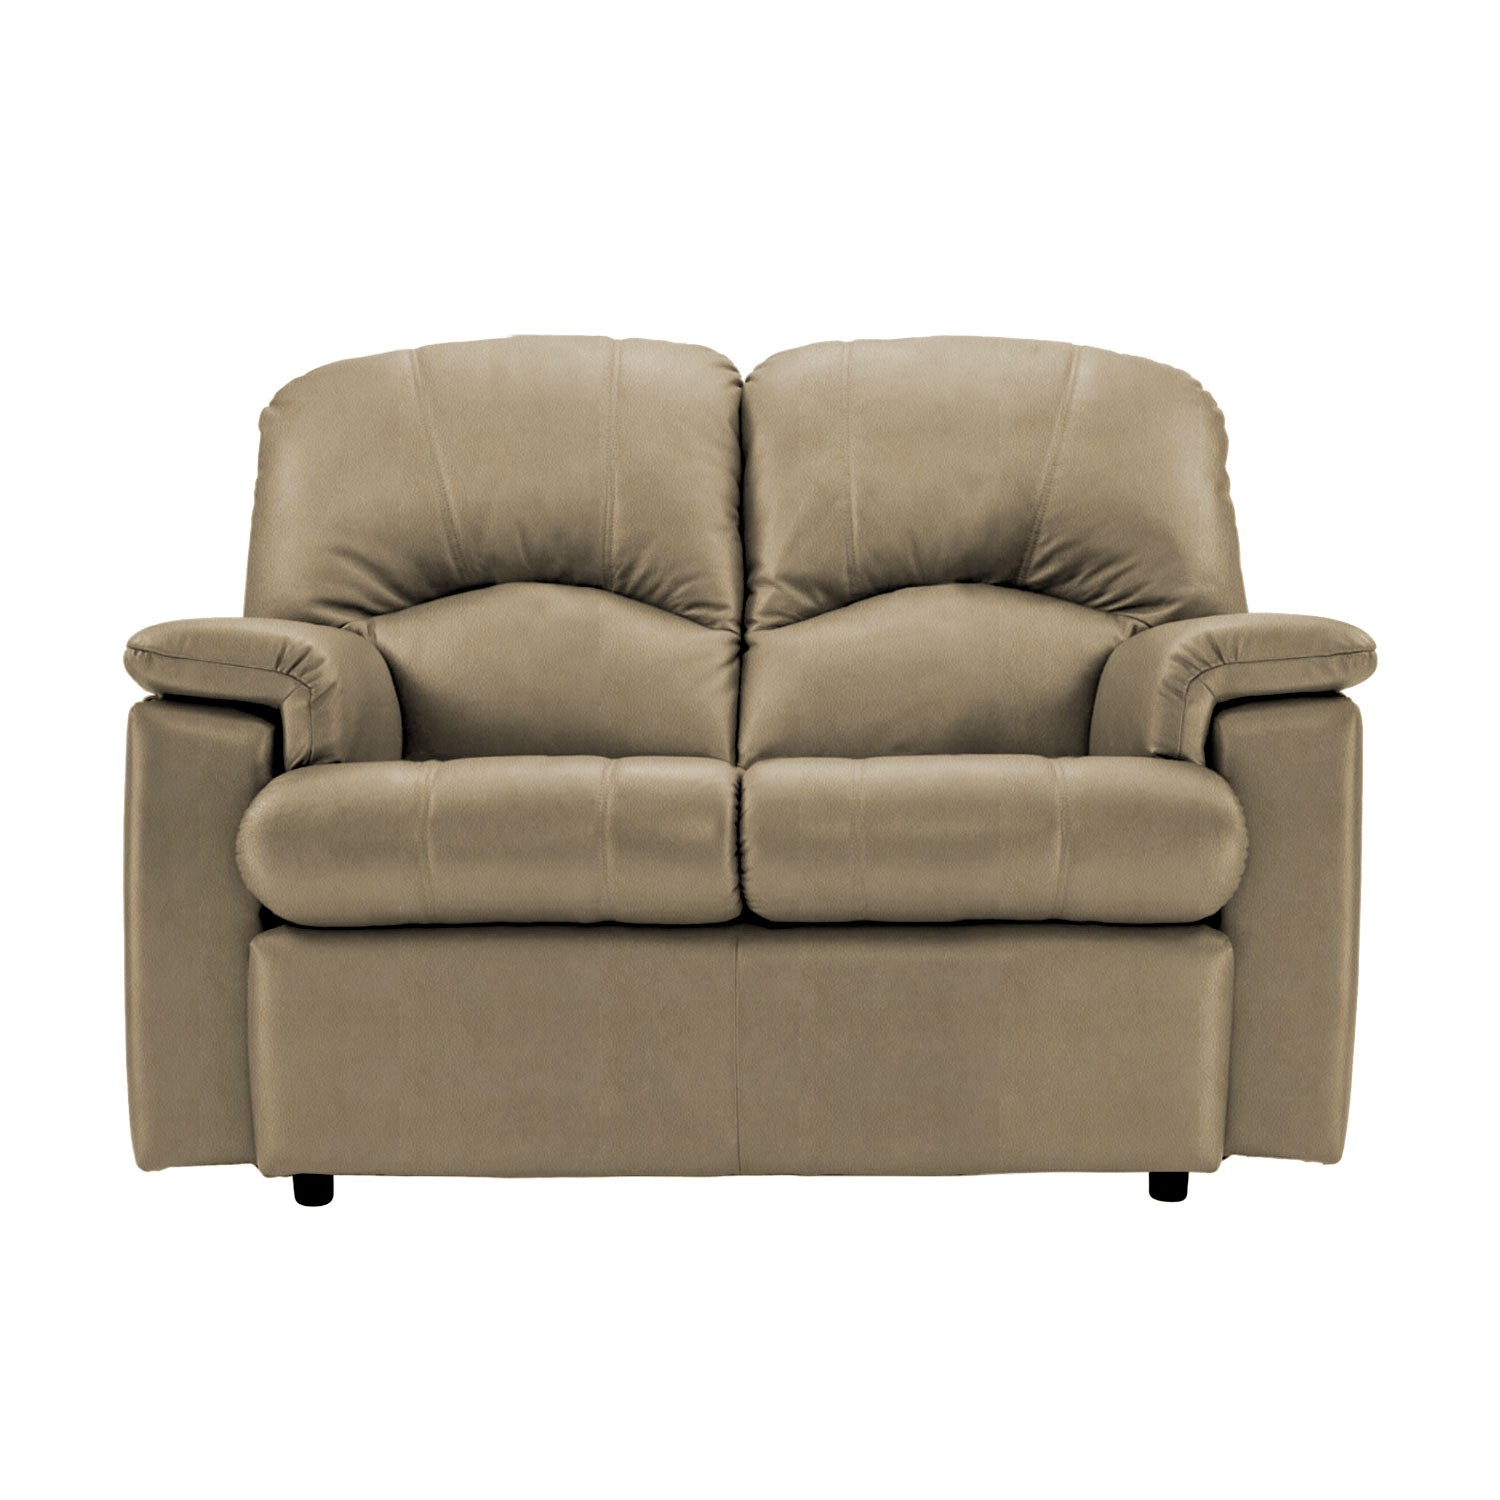 G Plan Chloe Two Seater Leather Sofa, Small For Small 2 Seater Sofas (View 14 of 15)